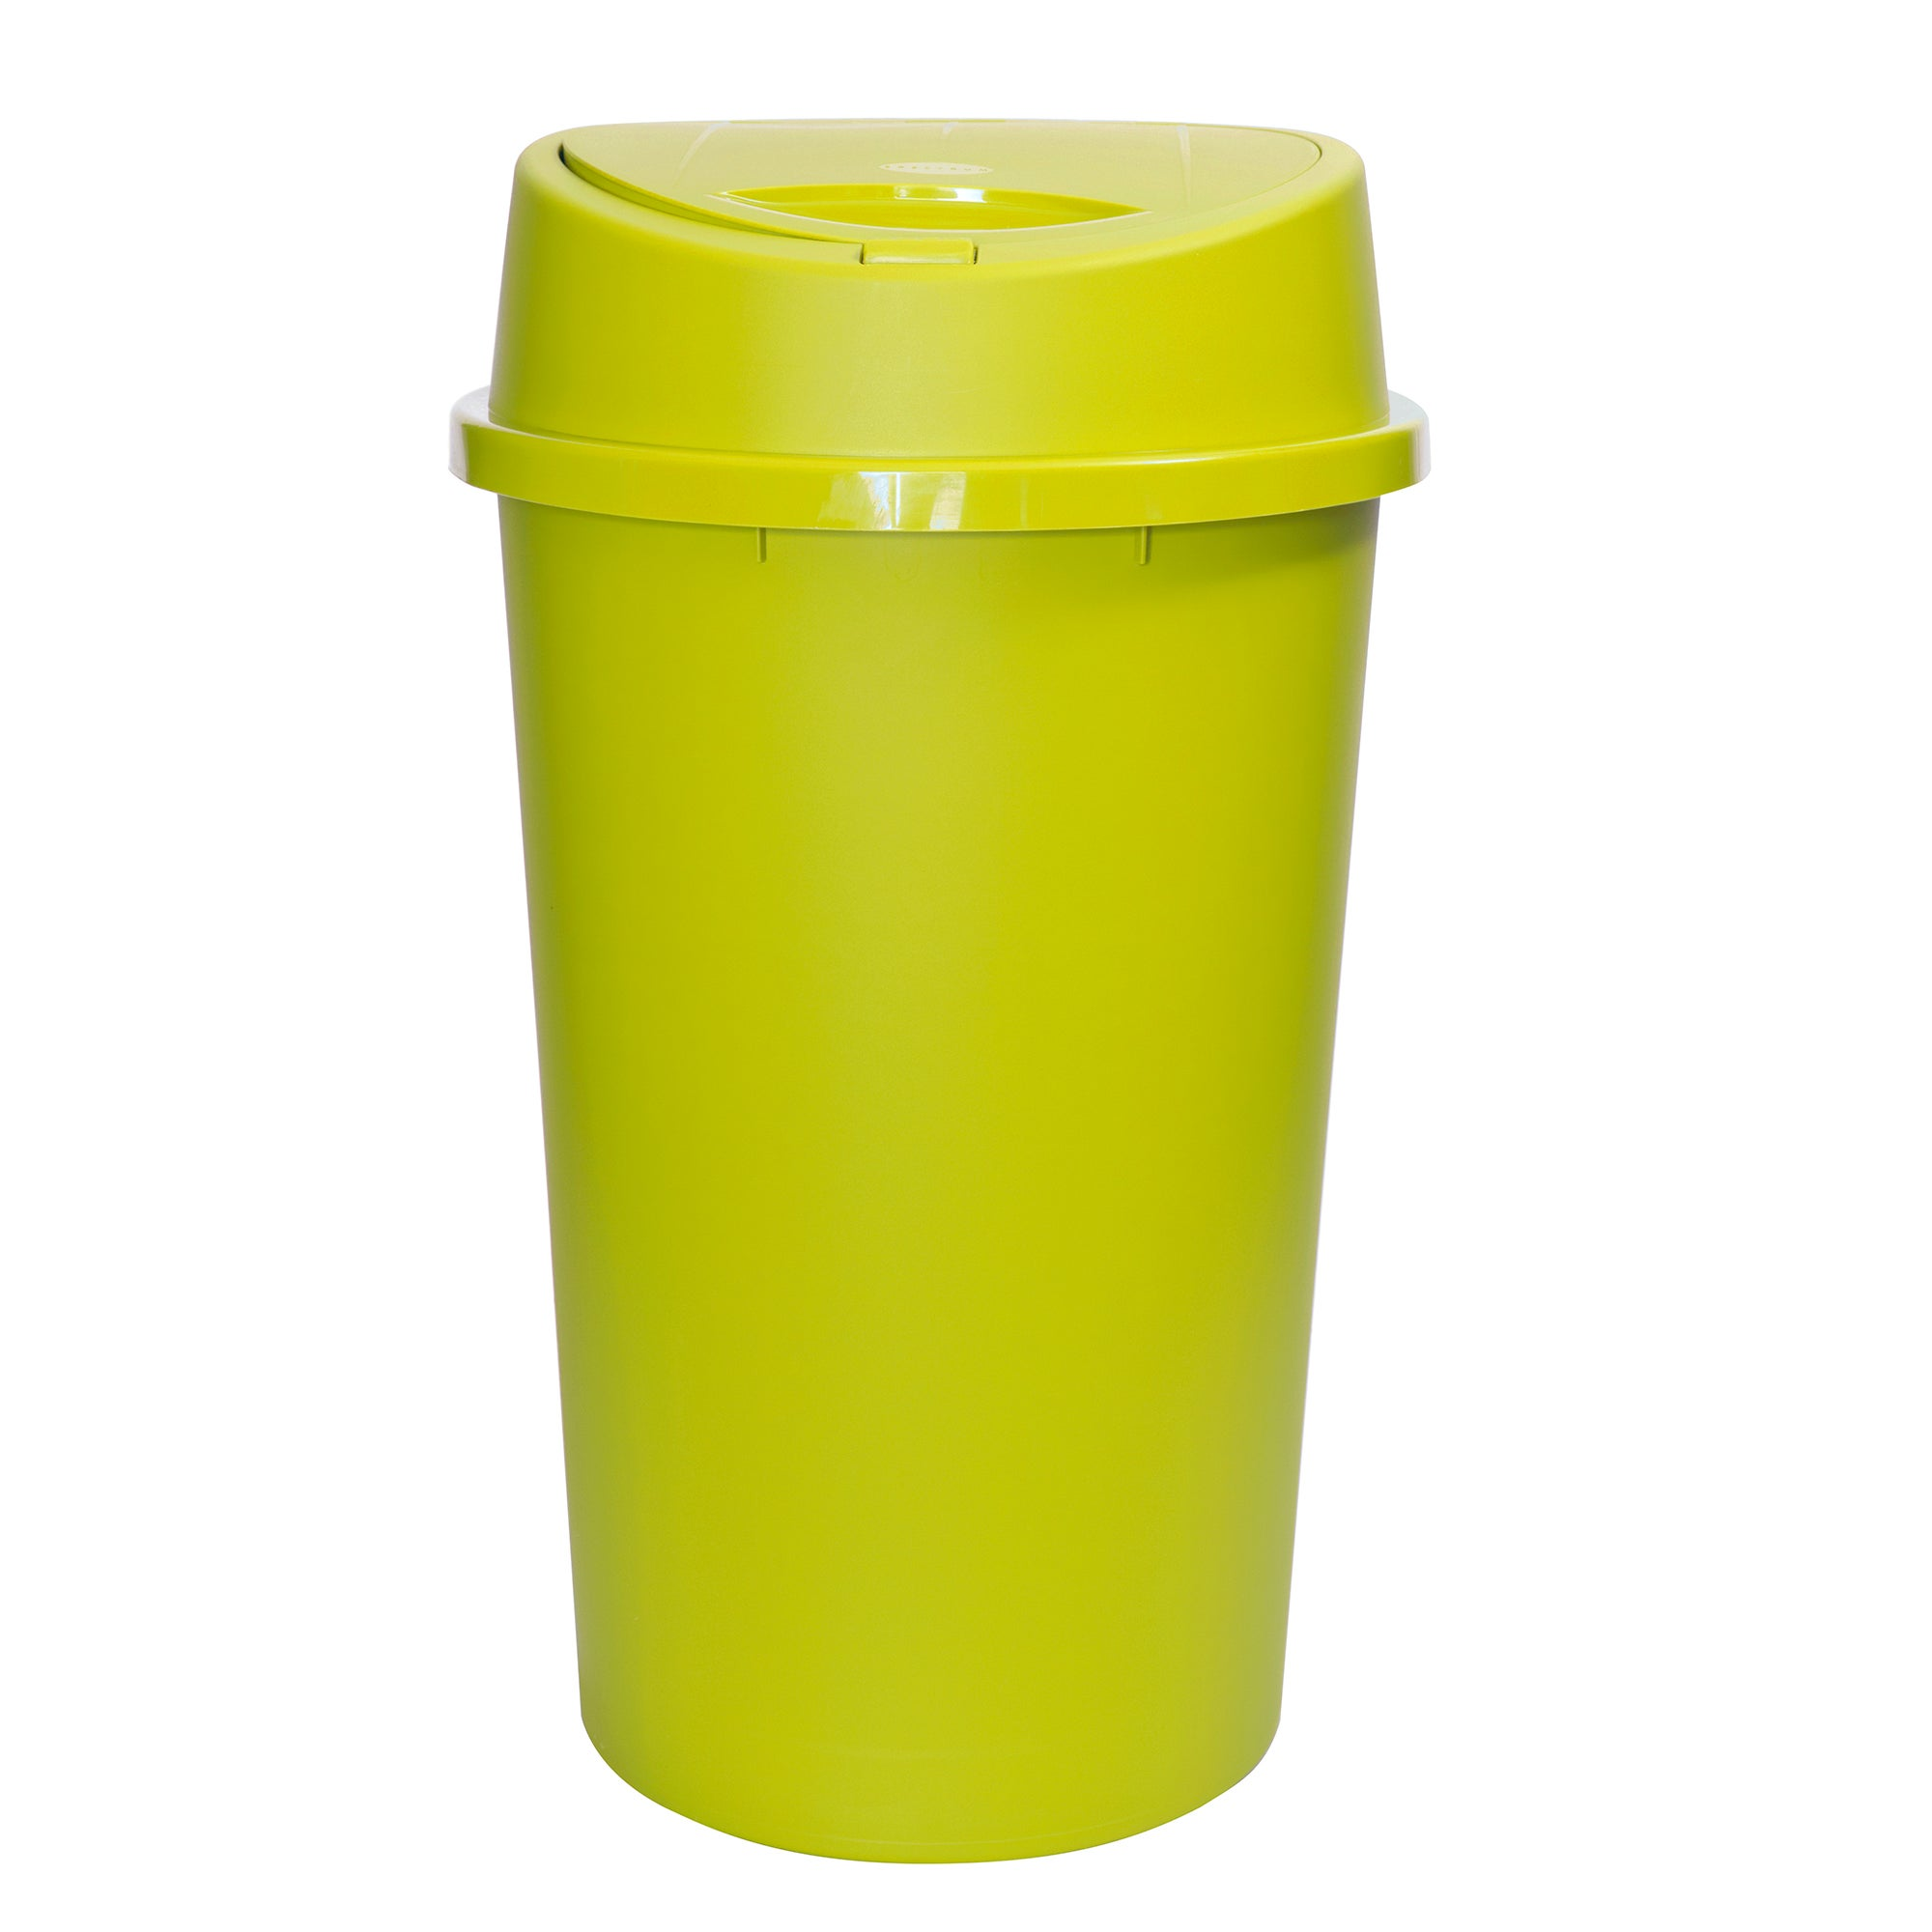 Spectrum Lime 45 Litre Touch Bin